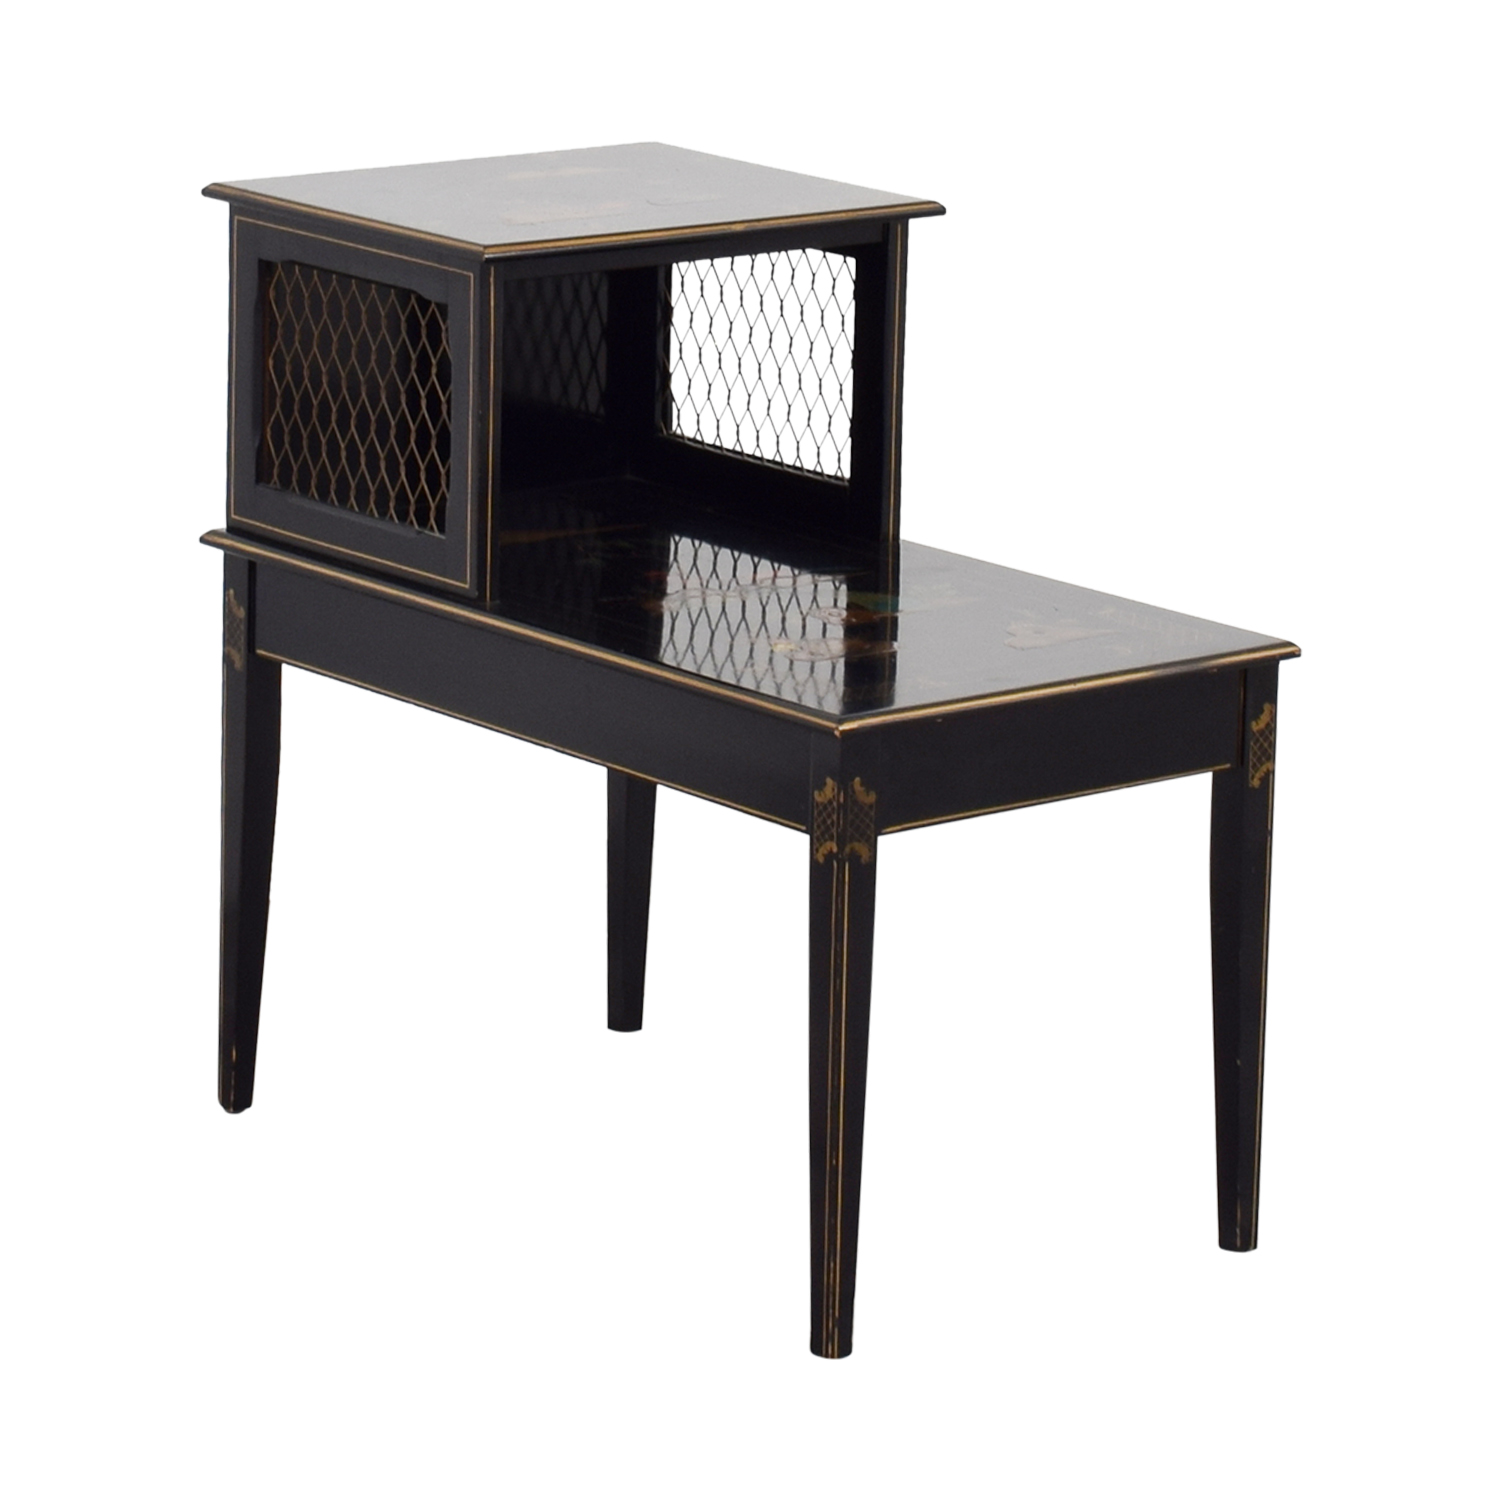 90 Off Katherine Henick Antique Katherine Henick Painted End Table Tables